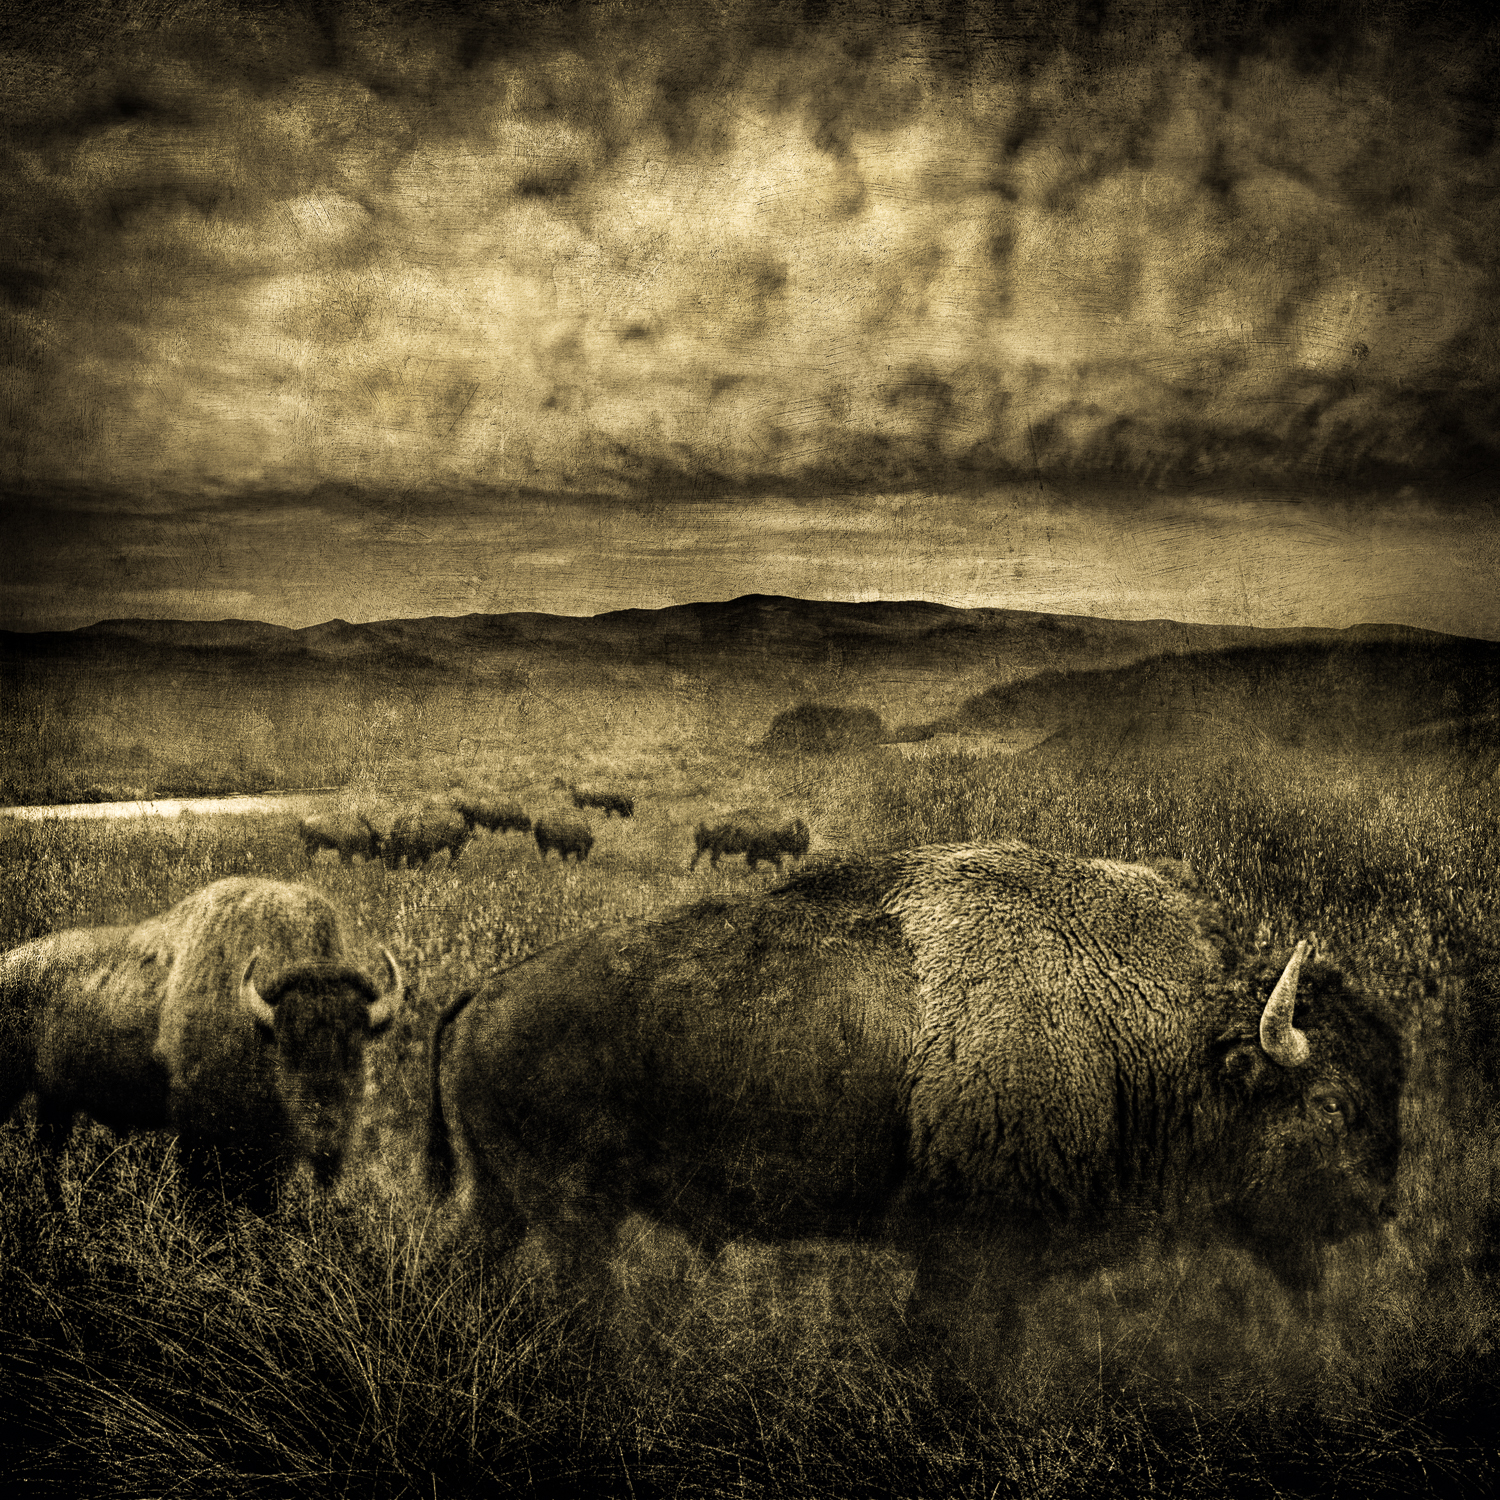 buffalo storm cloudsV4Flat_40x40split_tone3_8bit copy-Edit.jpg